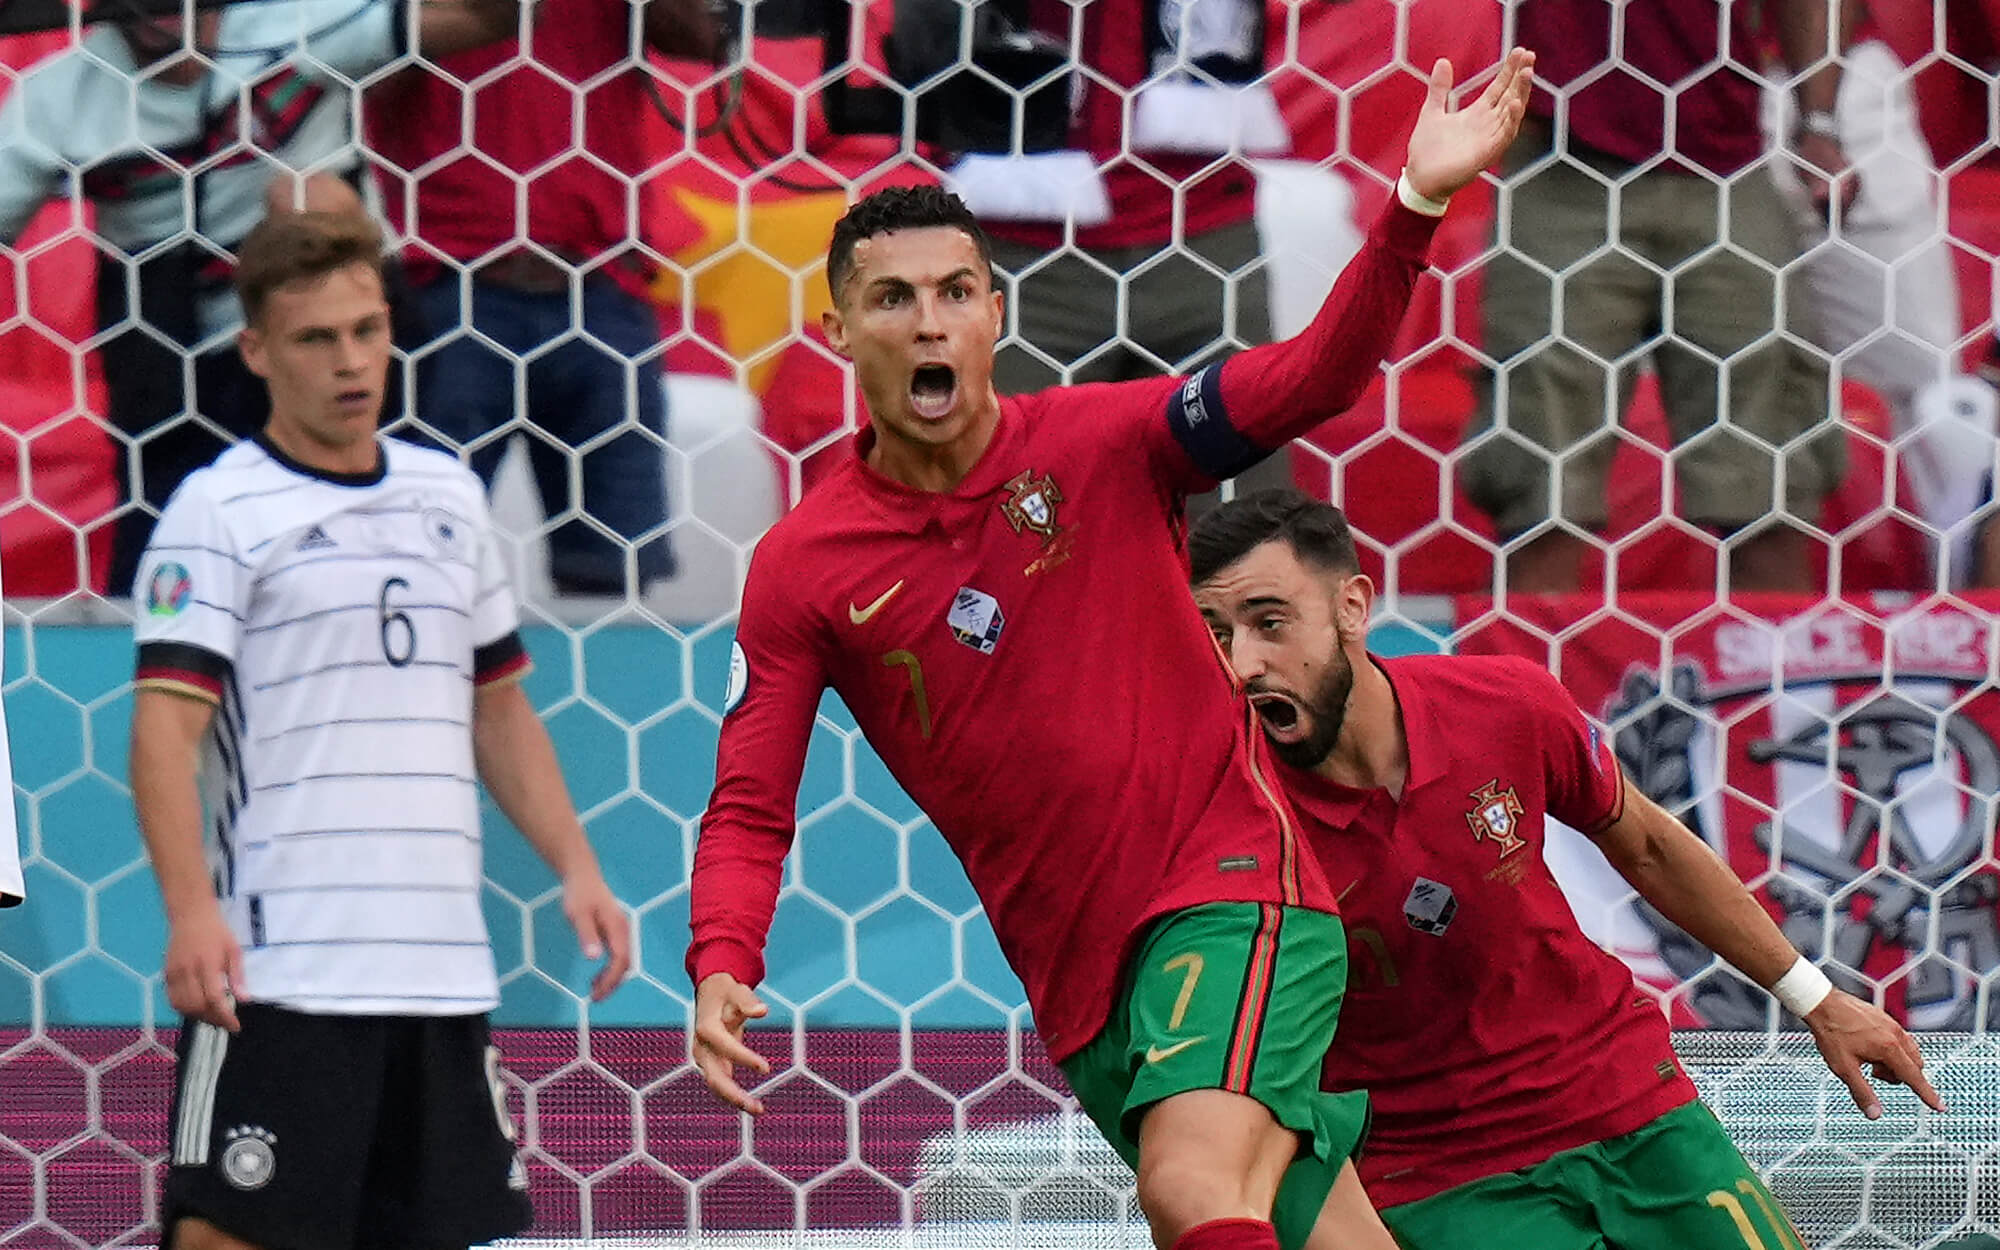 Euro 2020: Germany defeats defending champions Portugal 4-2